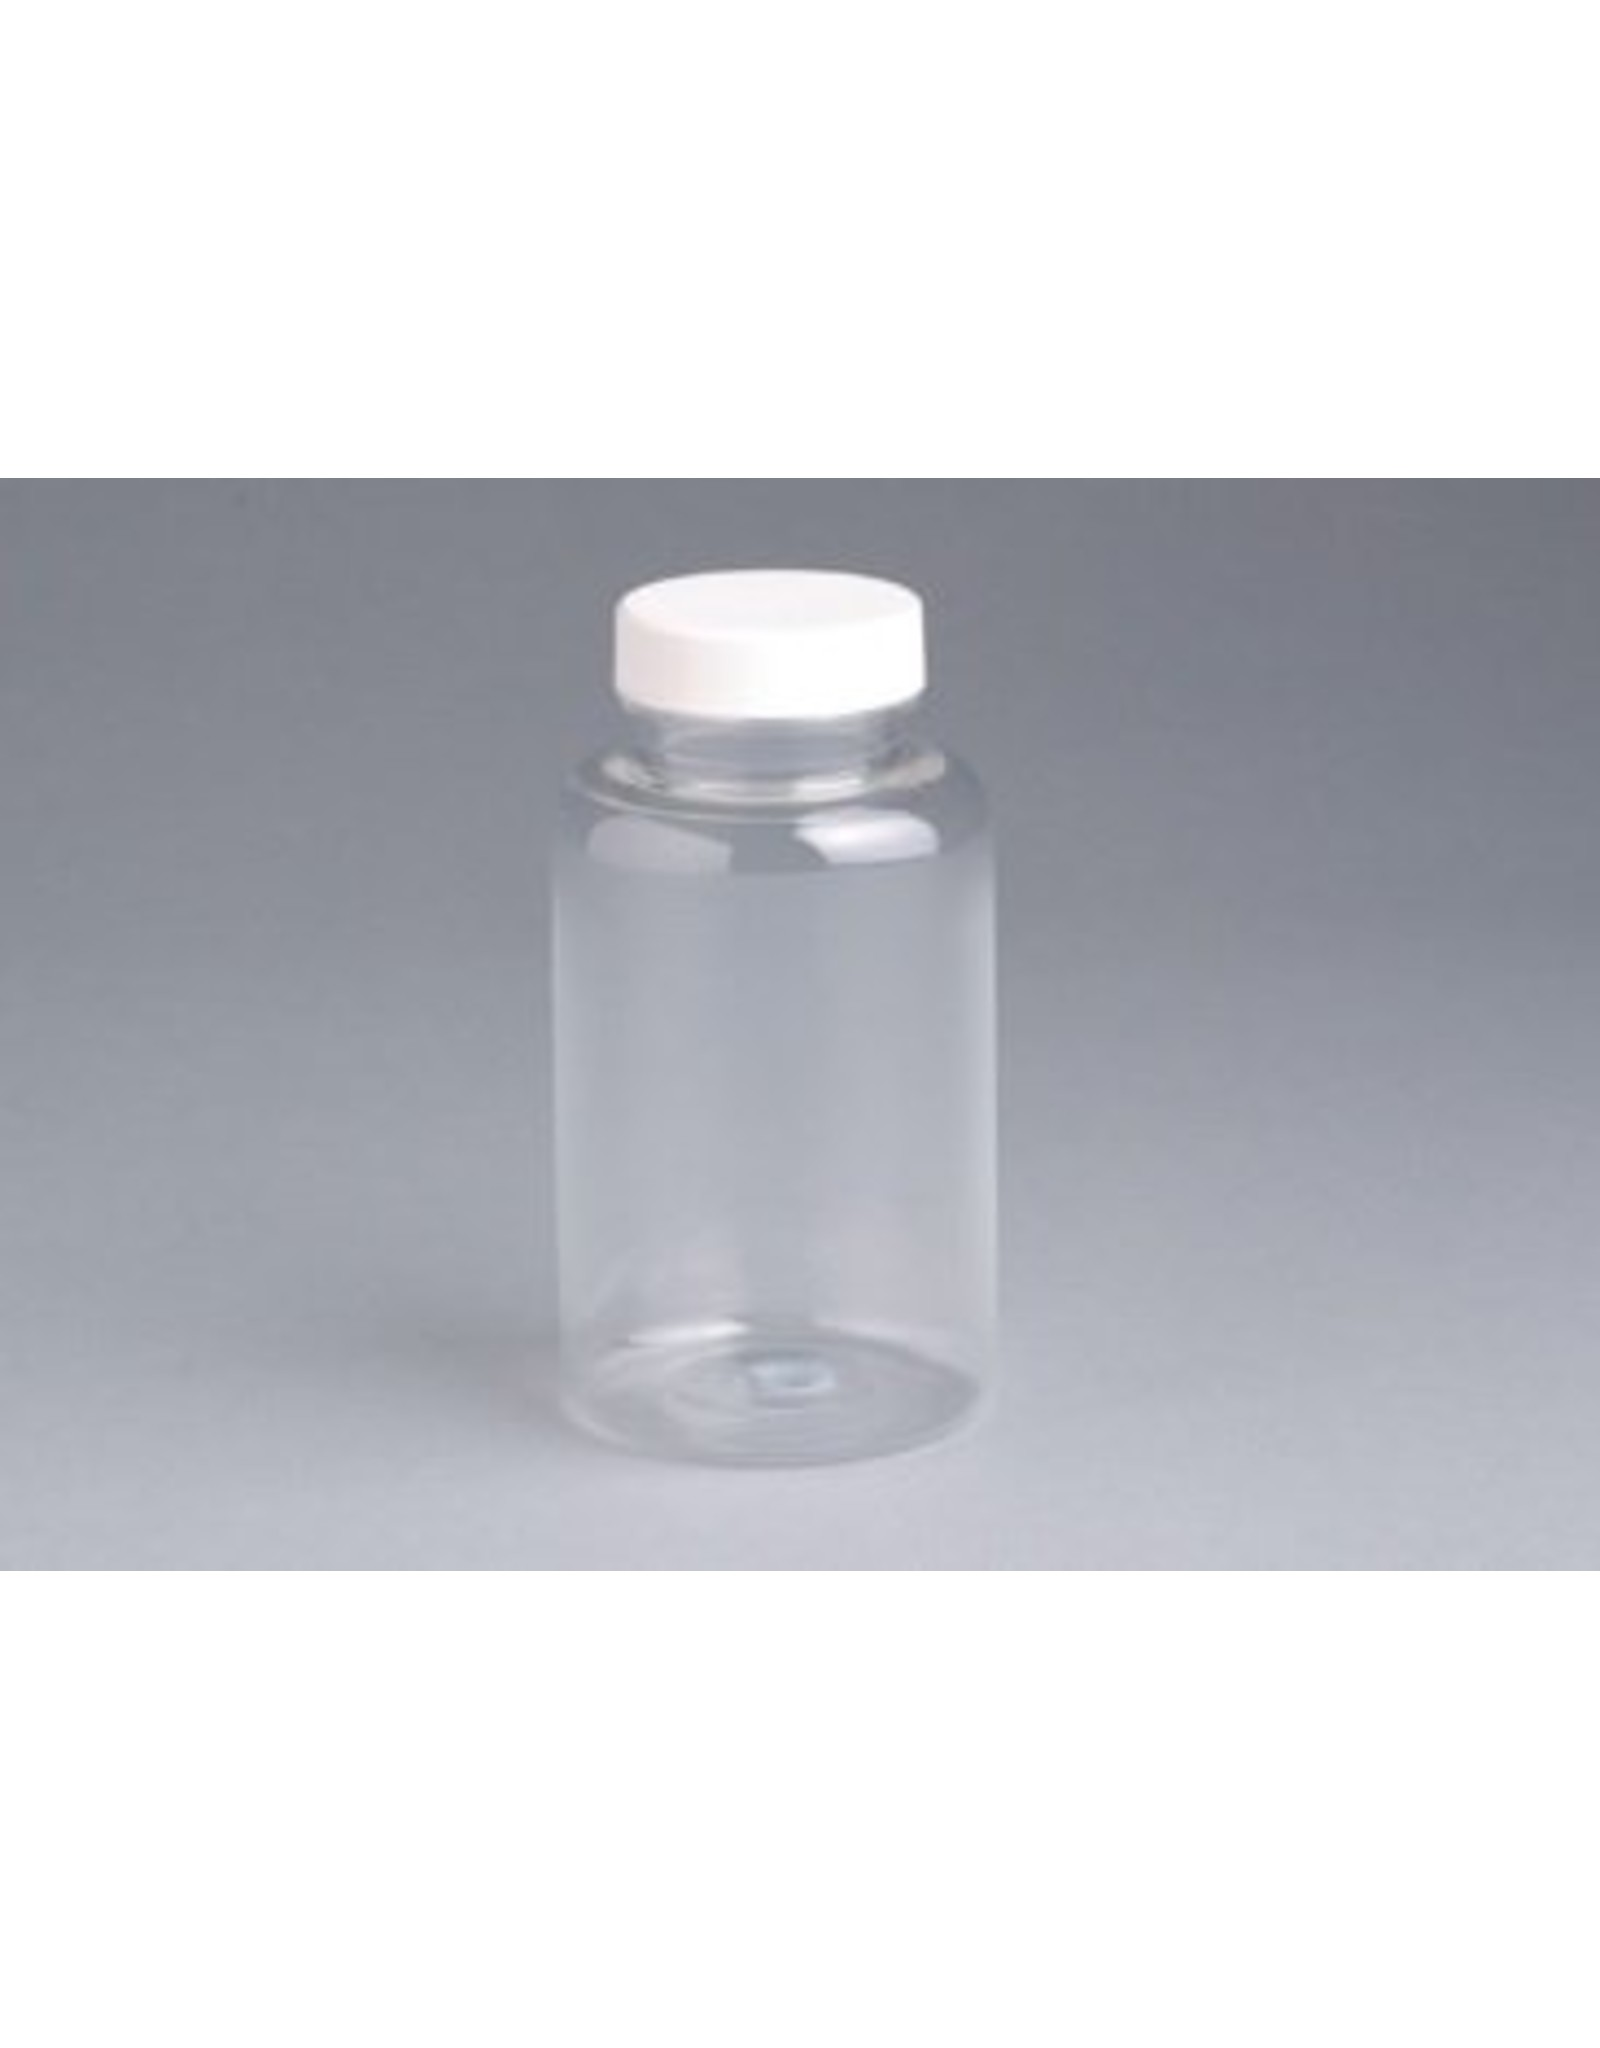 Craft Care VMP Fuel sampling bottle 120ml (4oz) - Pack of 5